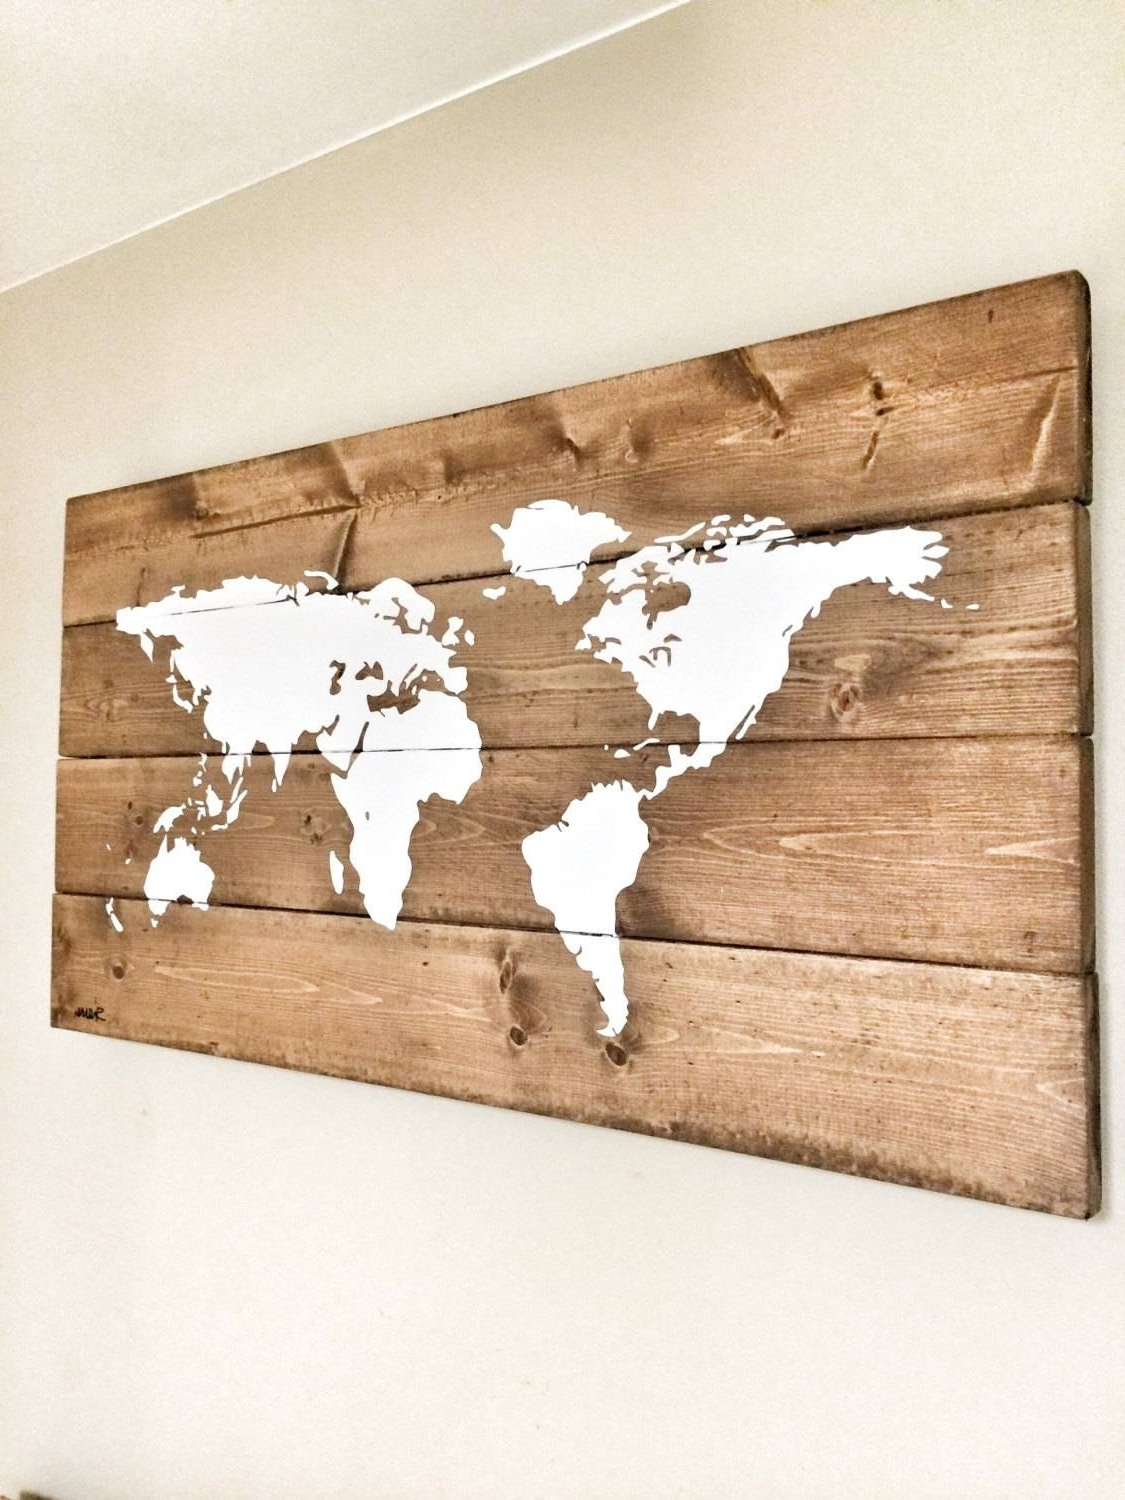 Most Recent 20 The Best Wood Map Wall Art. Map Of Countries (View 10 of 15)